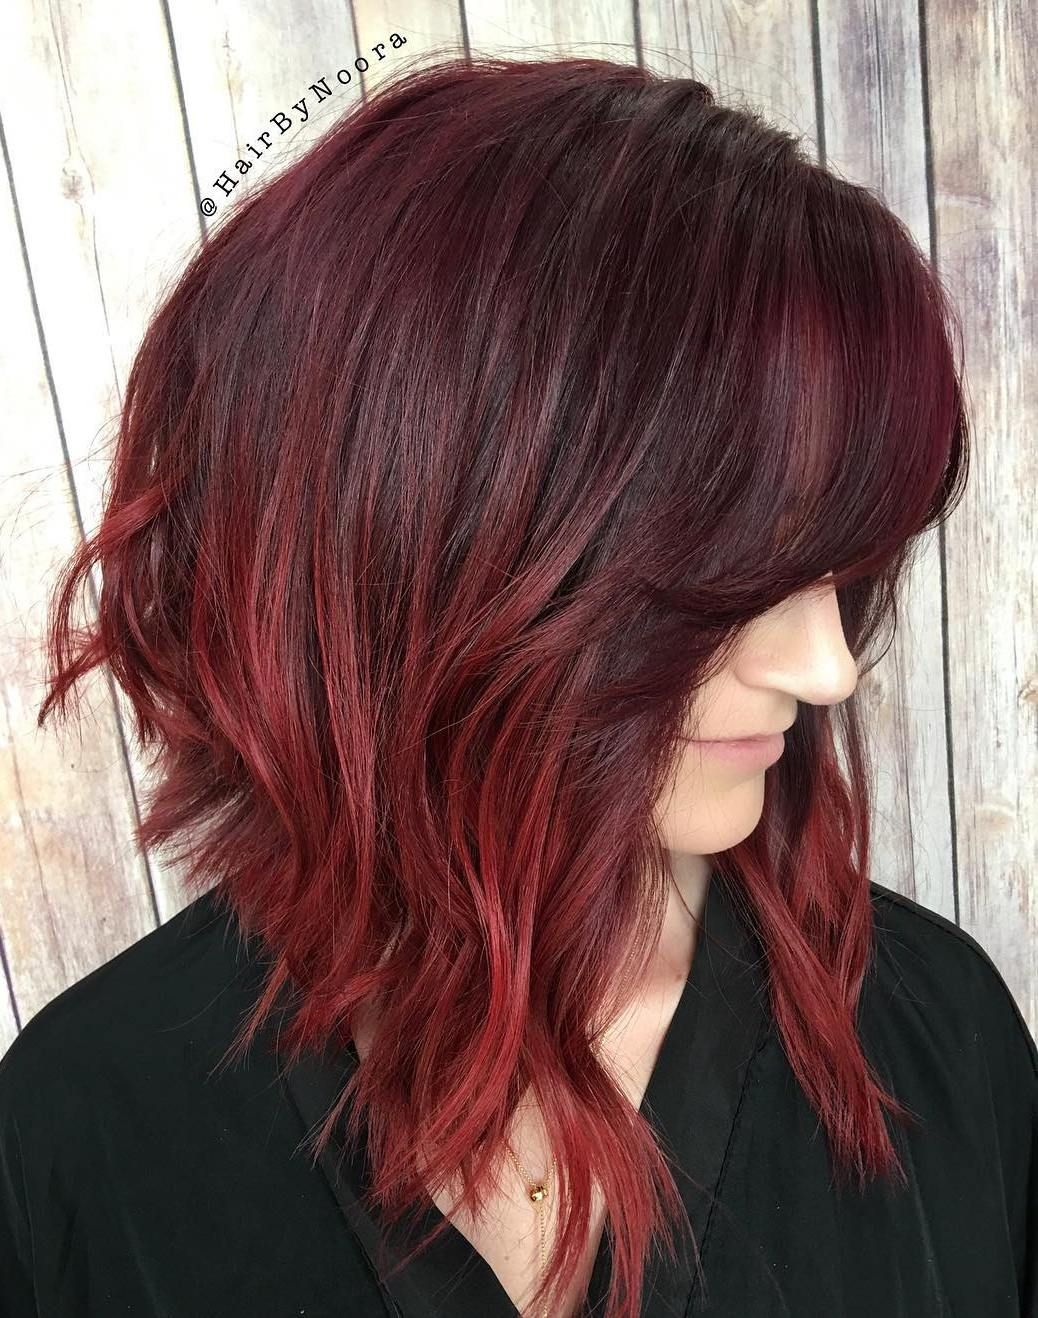 50 Shades Of Burgundy Hair Color Dark Maroon Red Wine Red Violet Burgundy Hair Burgundy Balayage Inverted Long Bob